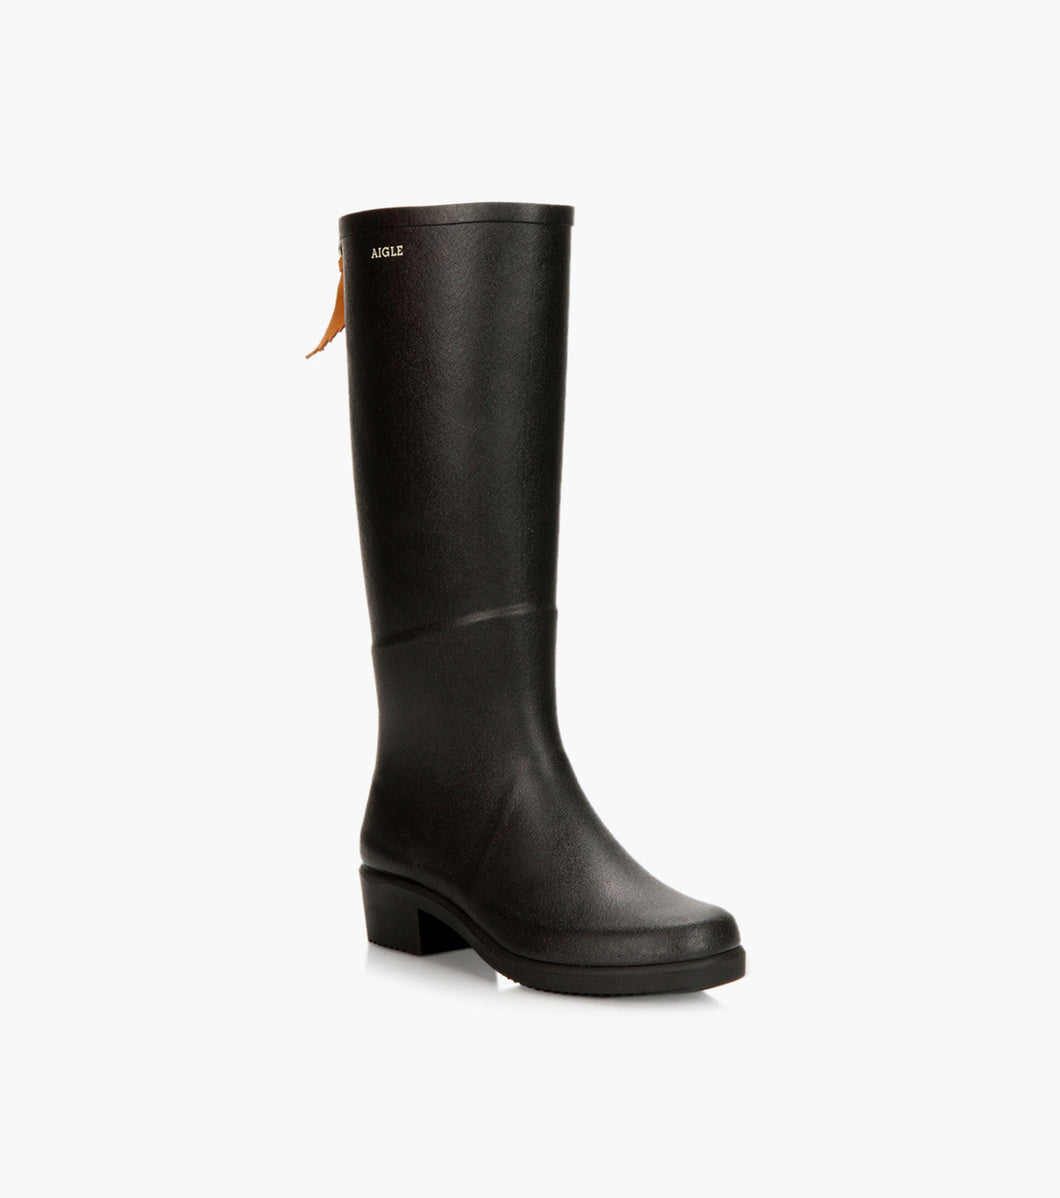 Miss Juliette A Rubber Boot Waterproof